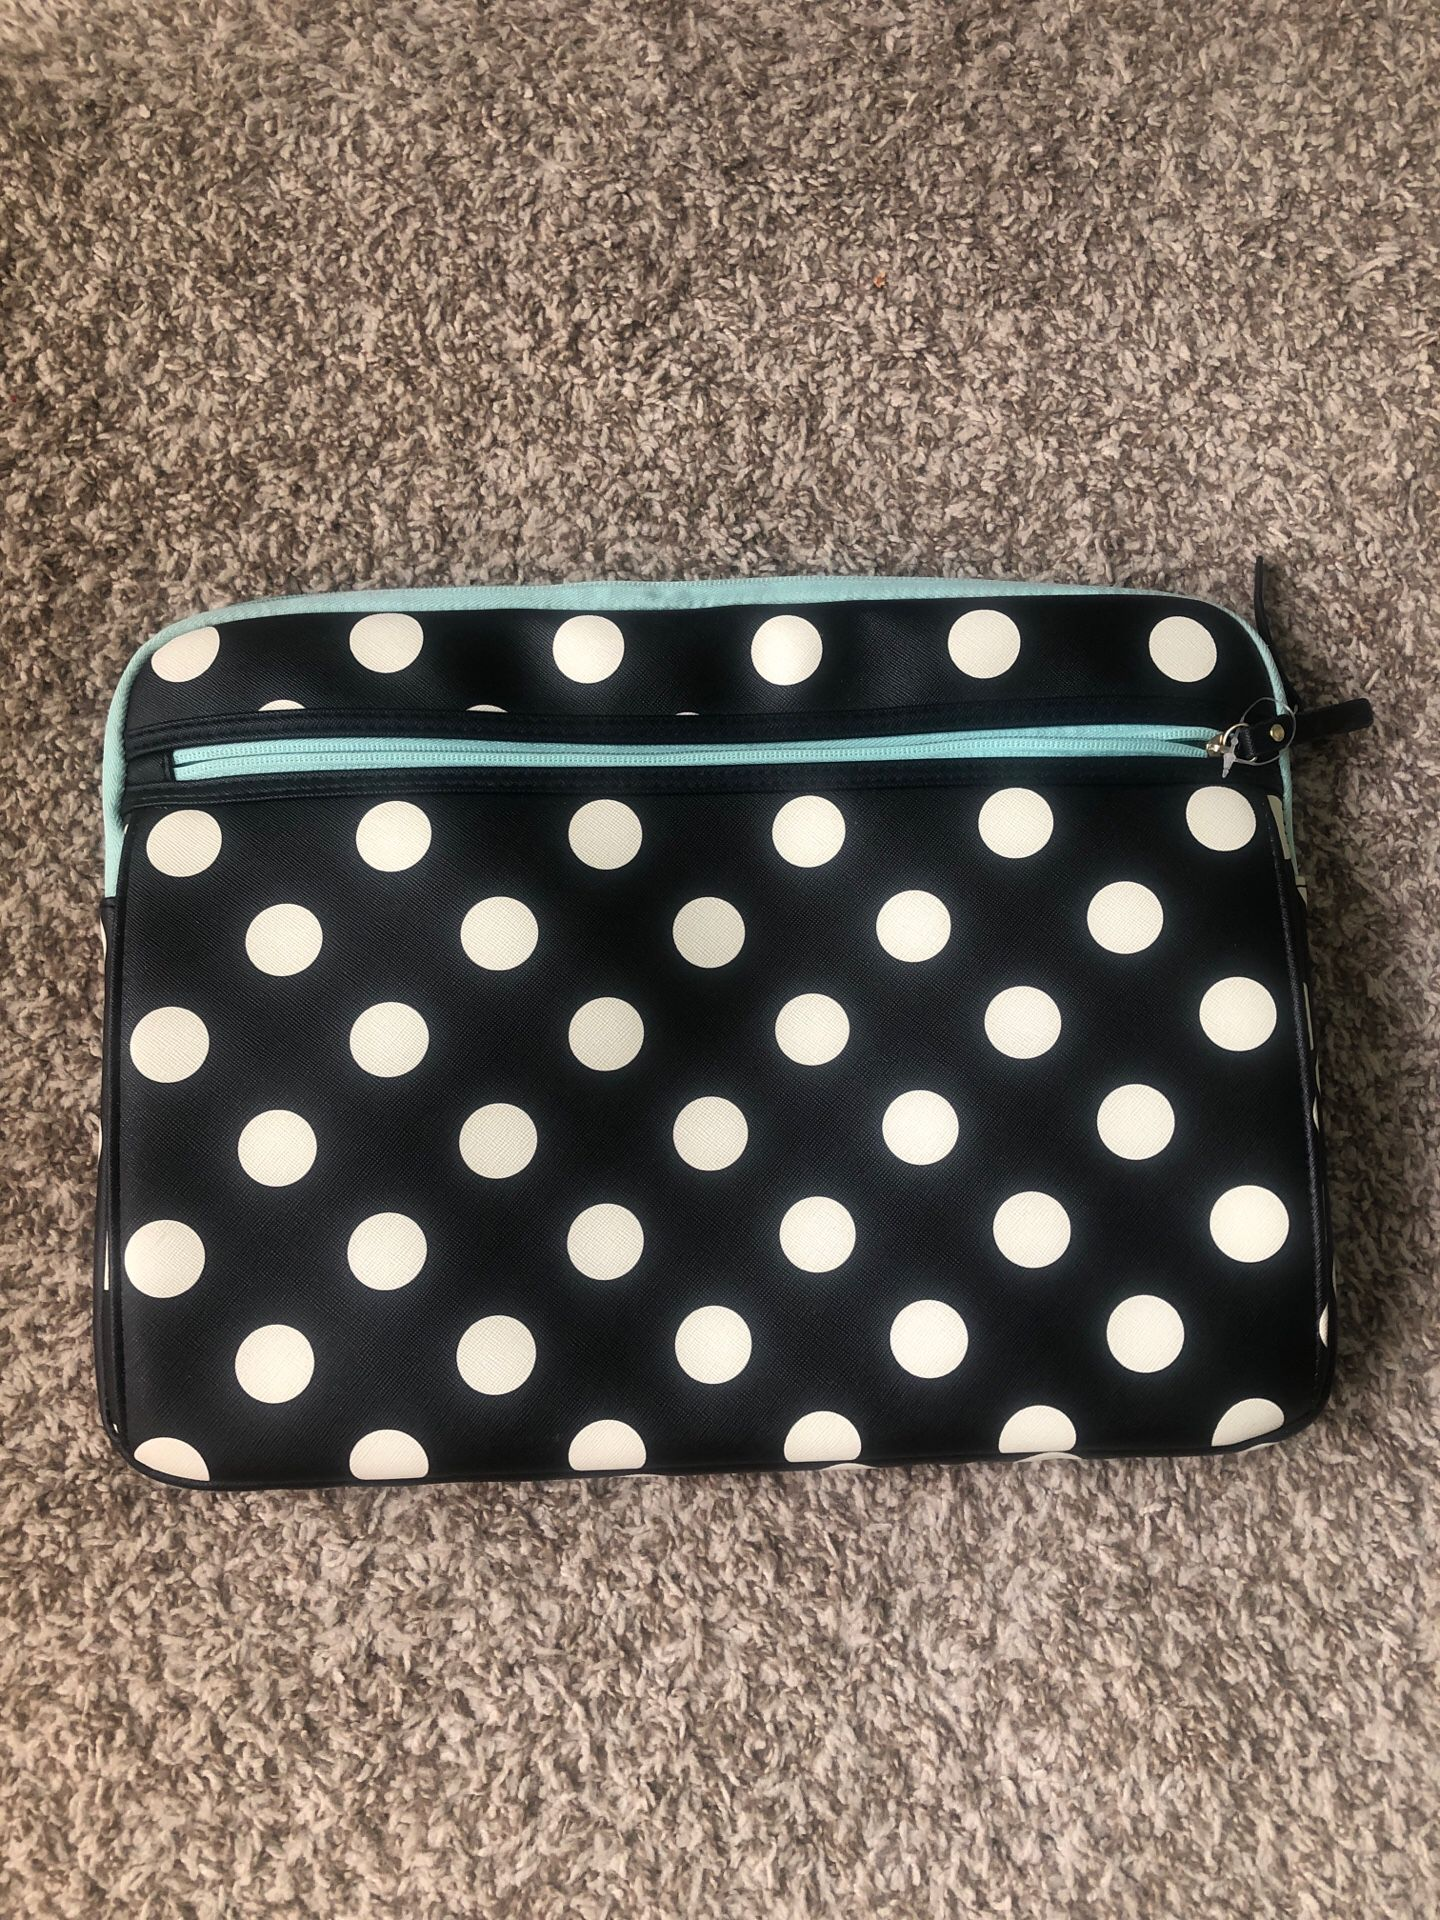 Laptop case 15' inches